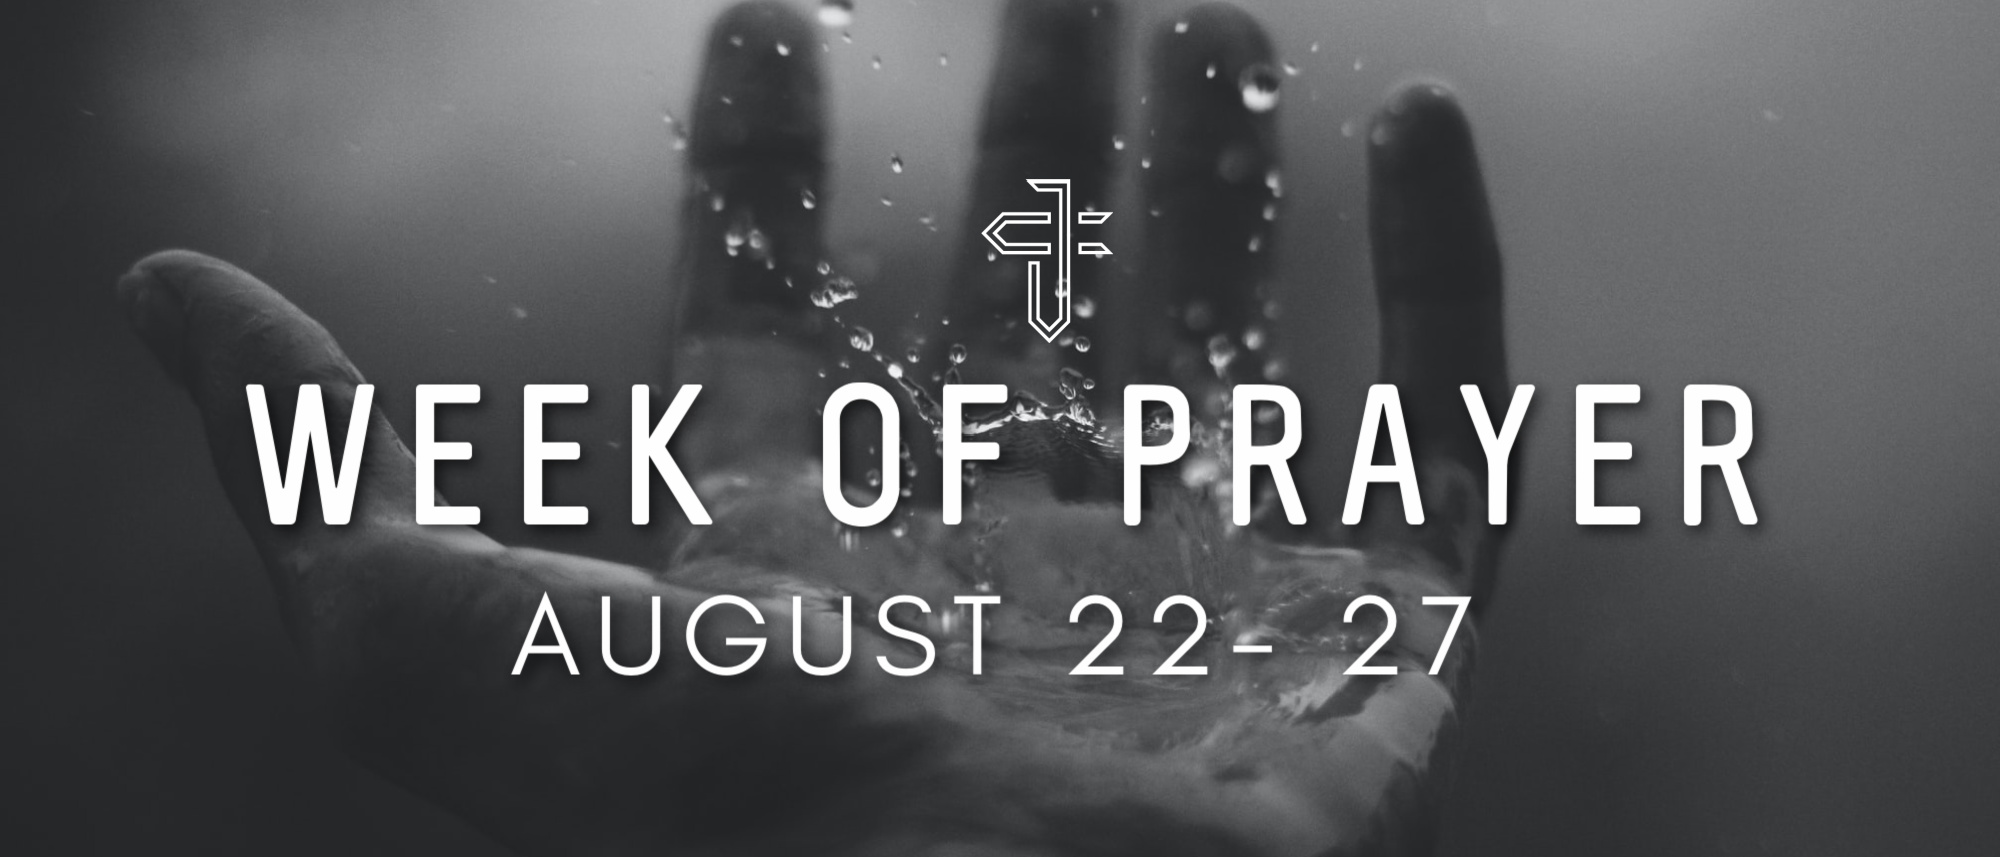 Join us for our dedicated week of prayer August 22-27 2021